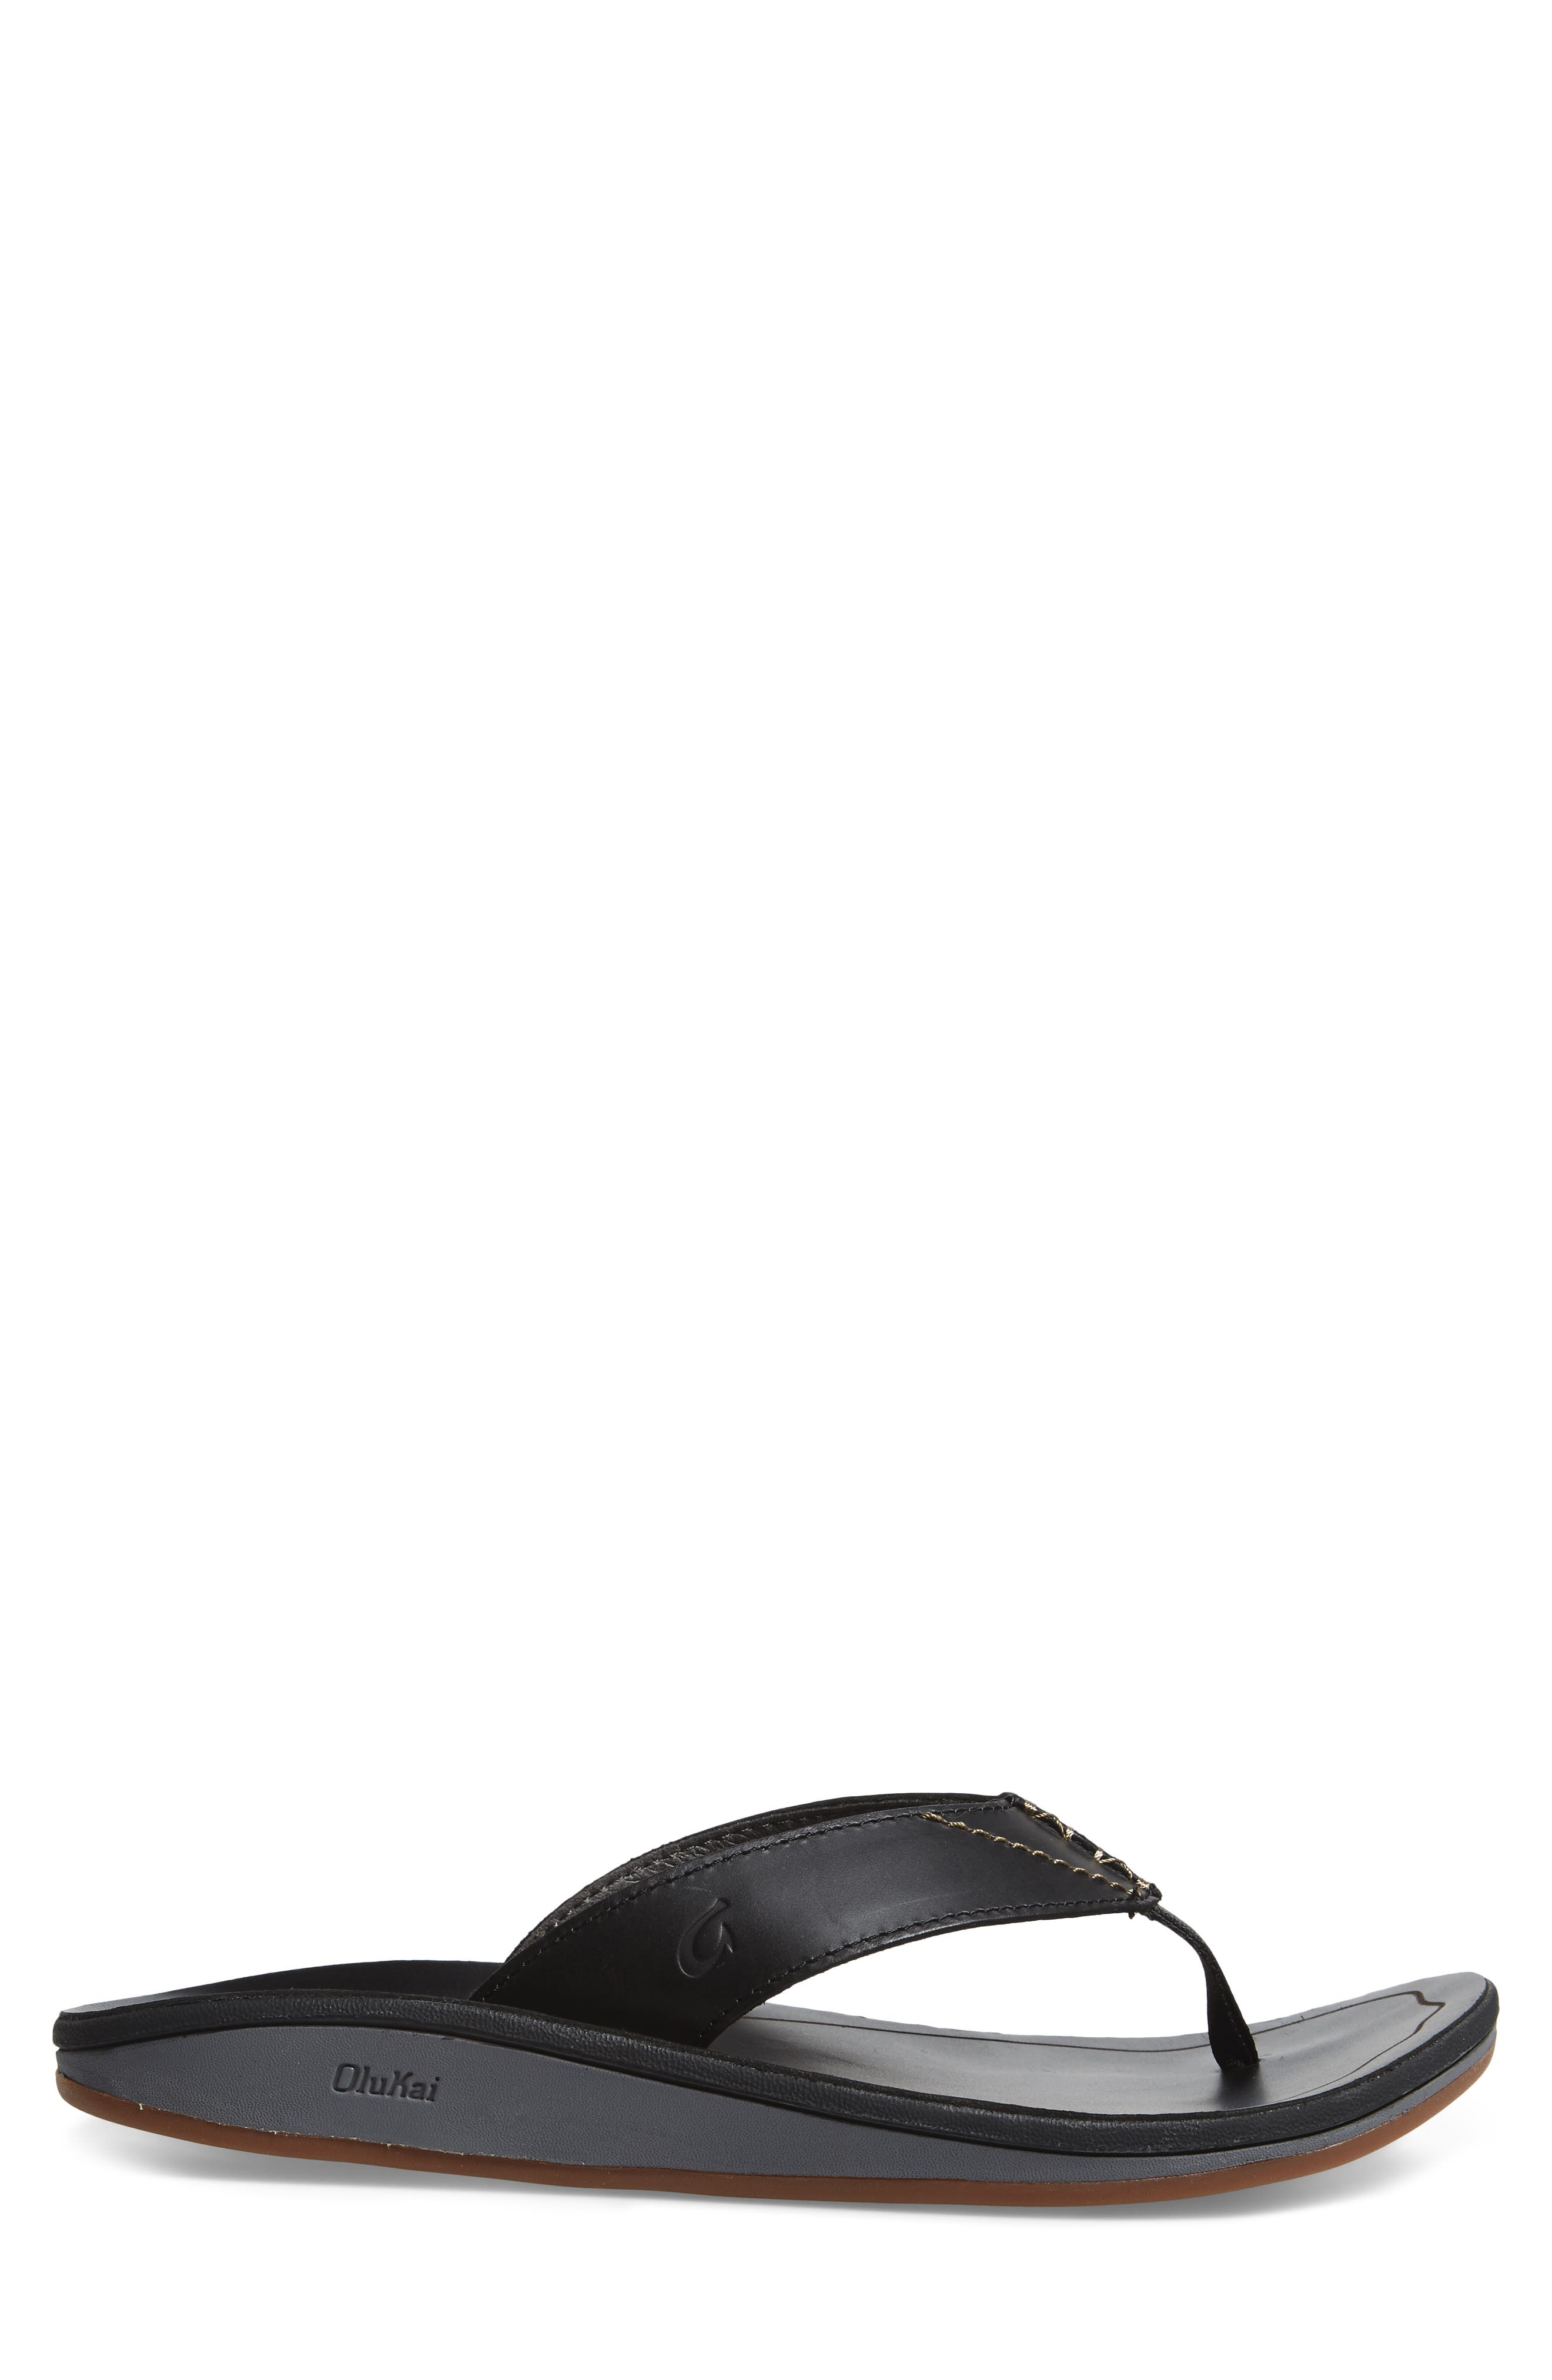 OLUKAI, Nohona Ili Flip Flop, Alternate thumbnail 3, color, BLACK/ BLACK LEATHER